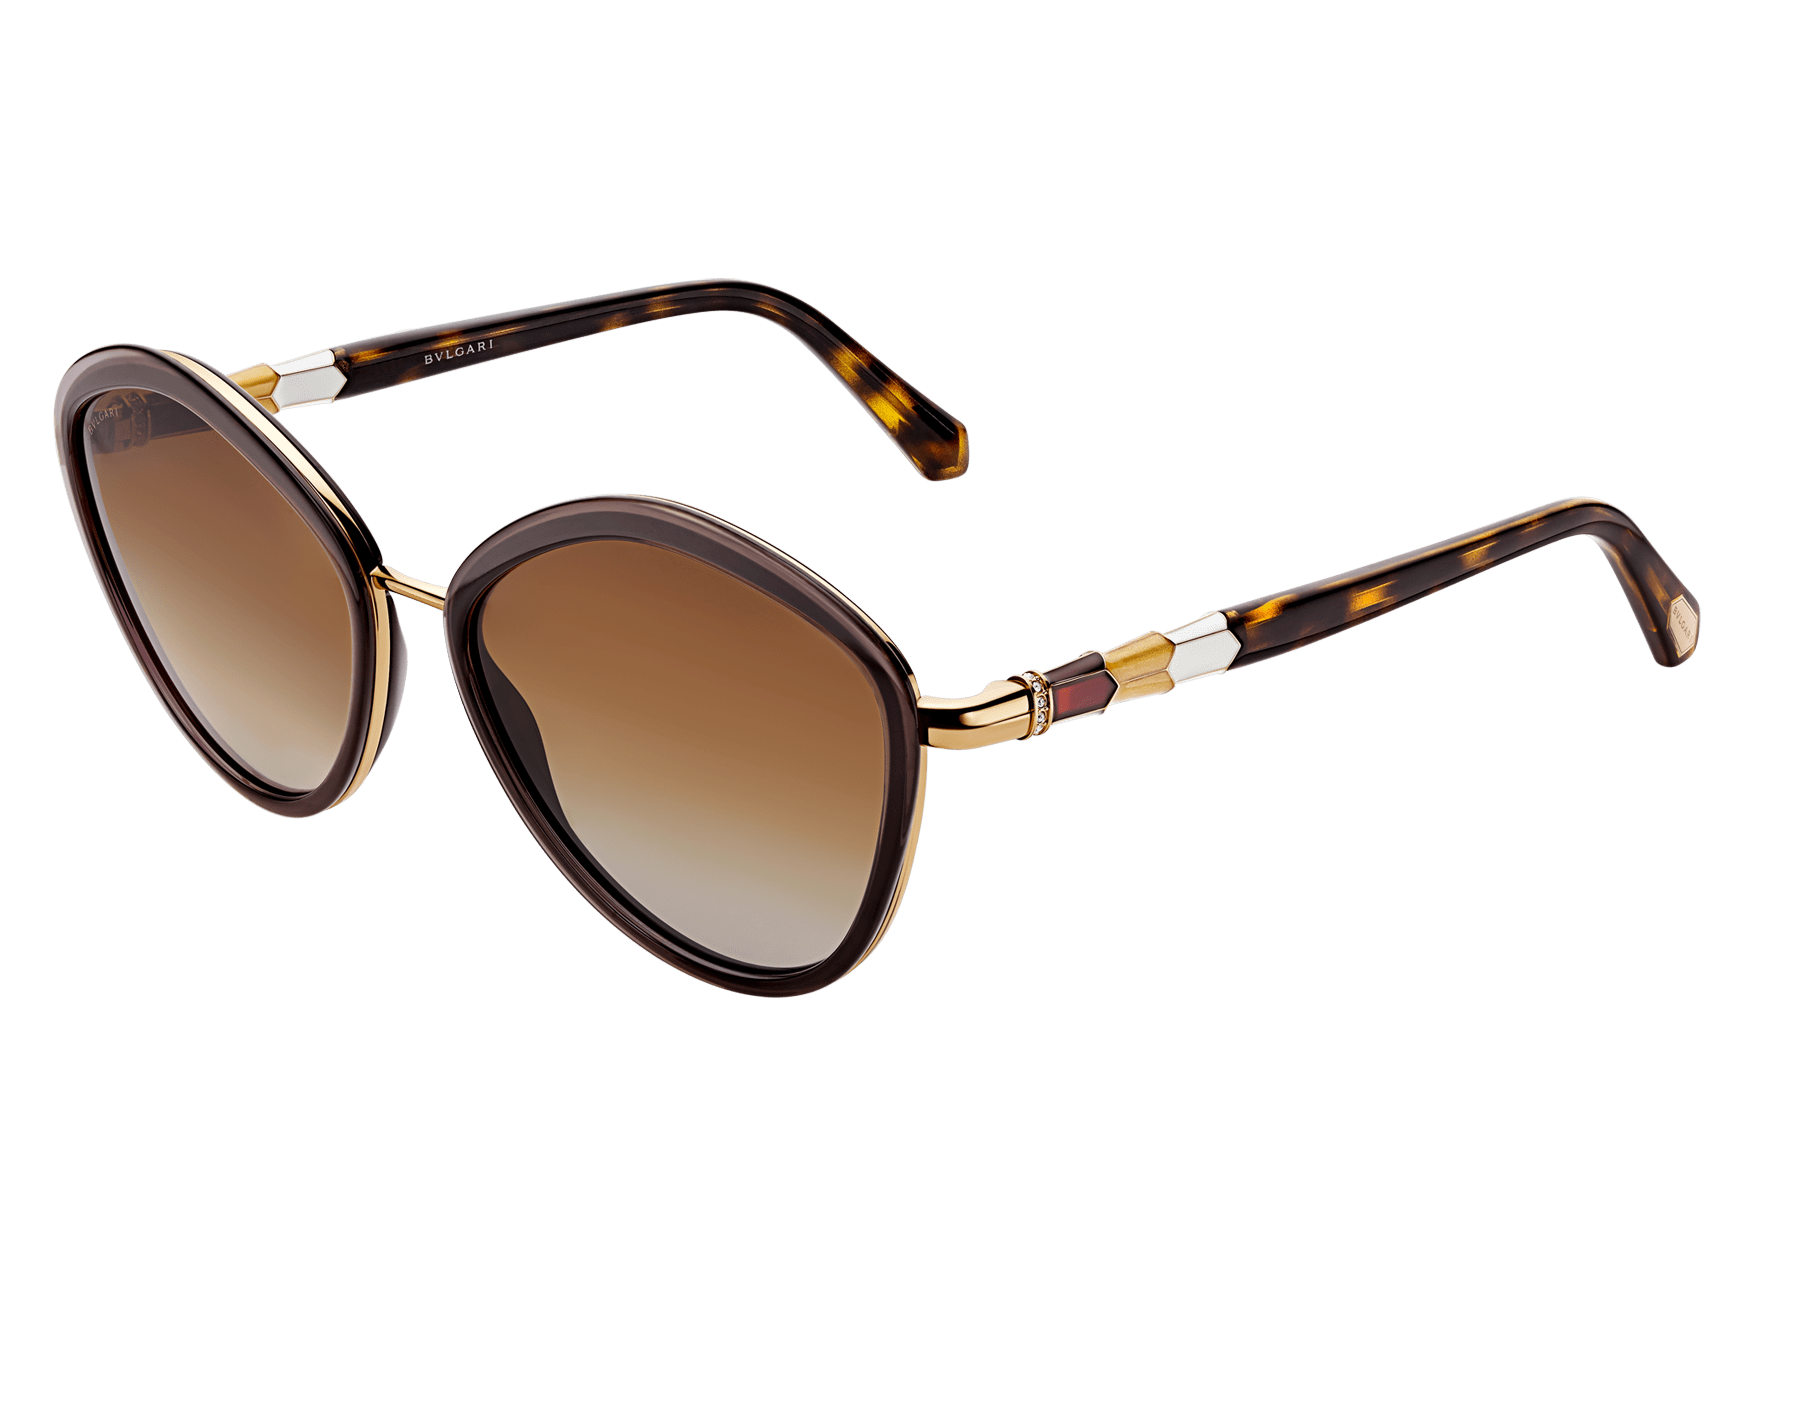 Bulgari Serpenti rounded metal sunglasses. 903984 image 1